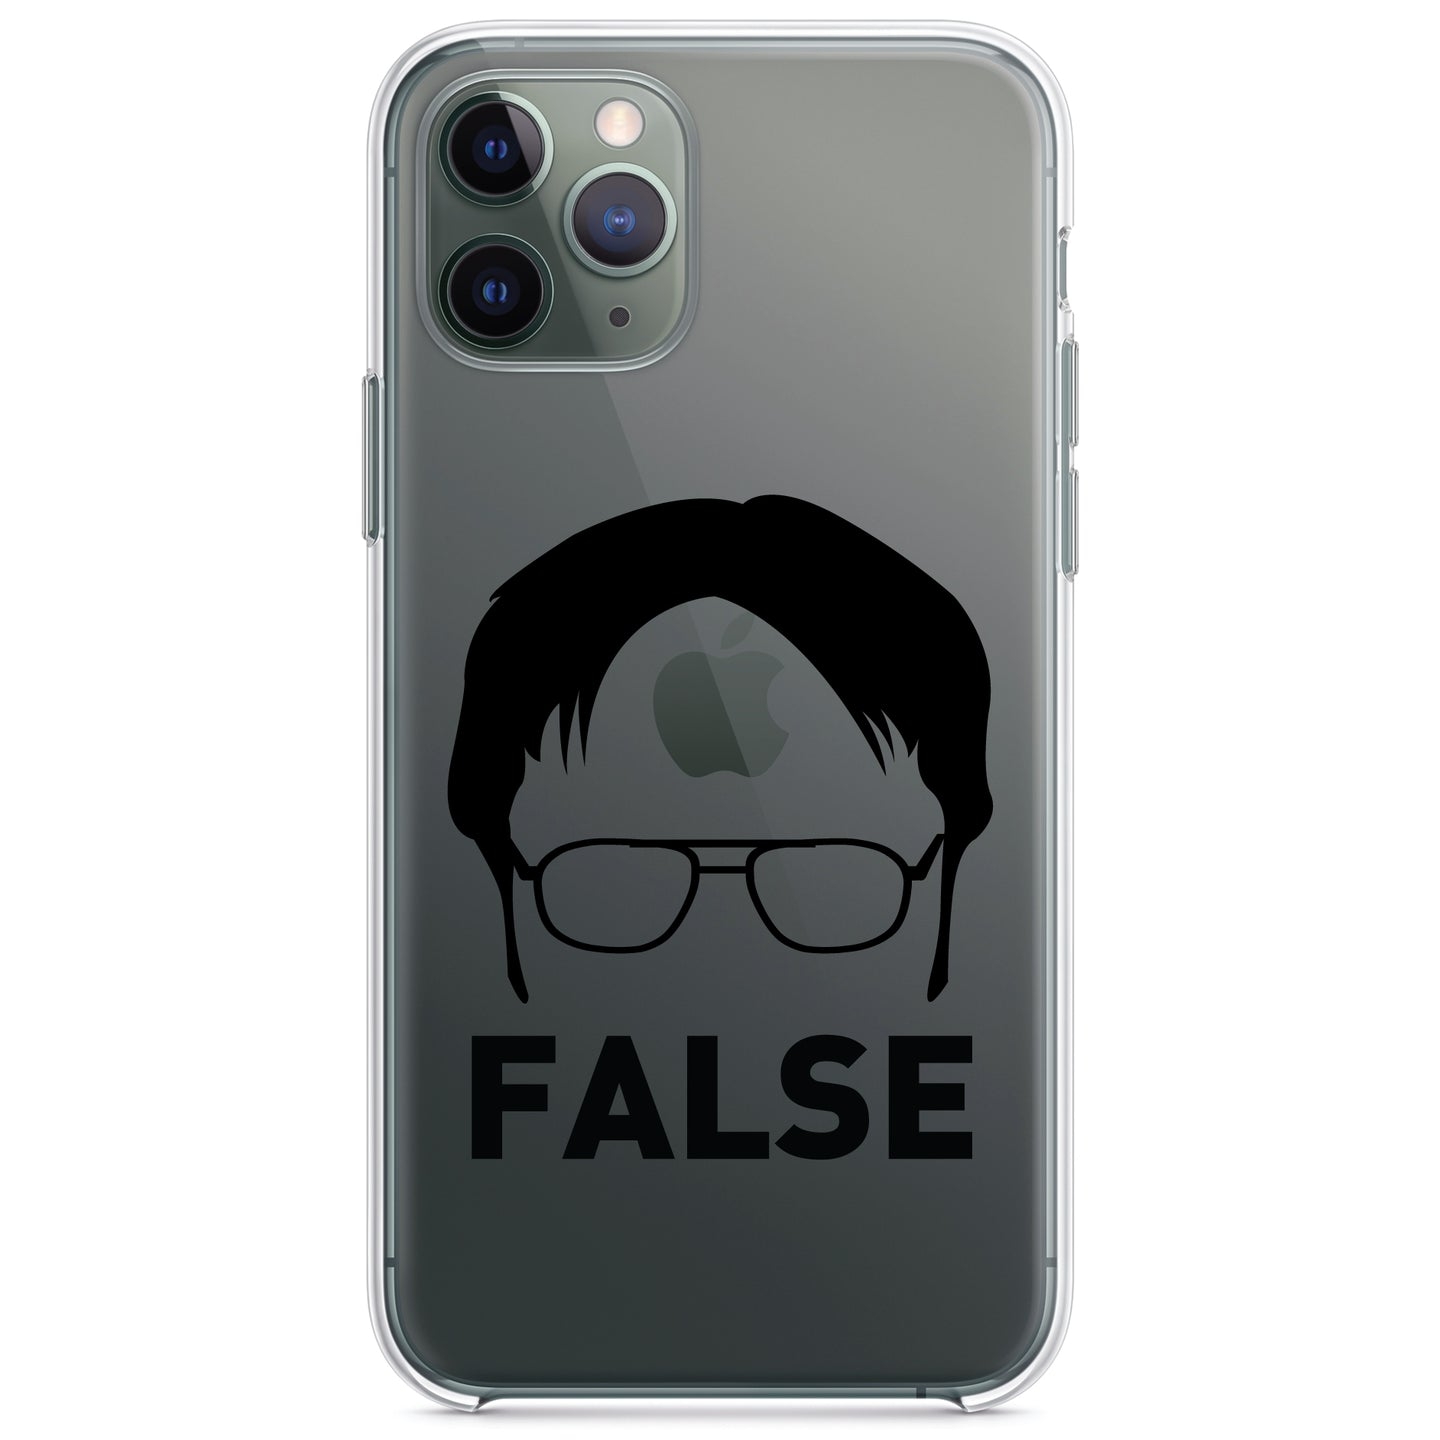 DistinctInk® Clear Shockproof Hybrid Case for Apple iPhone / Samsung Galaxy / Google Pixel - Dwight Silhouette - FALSE